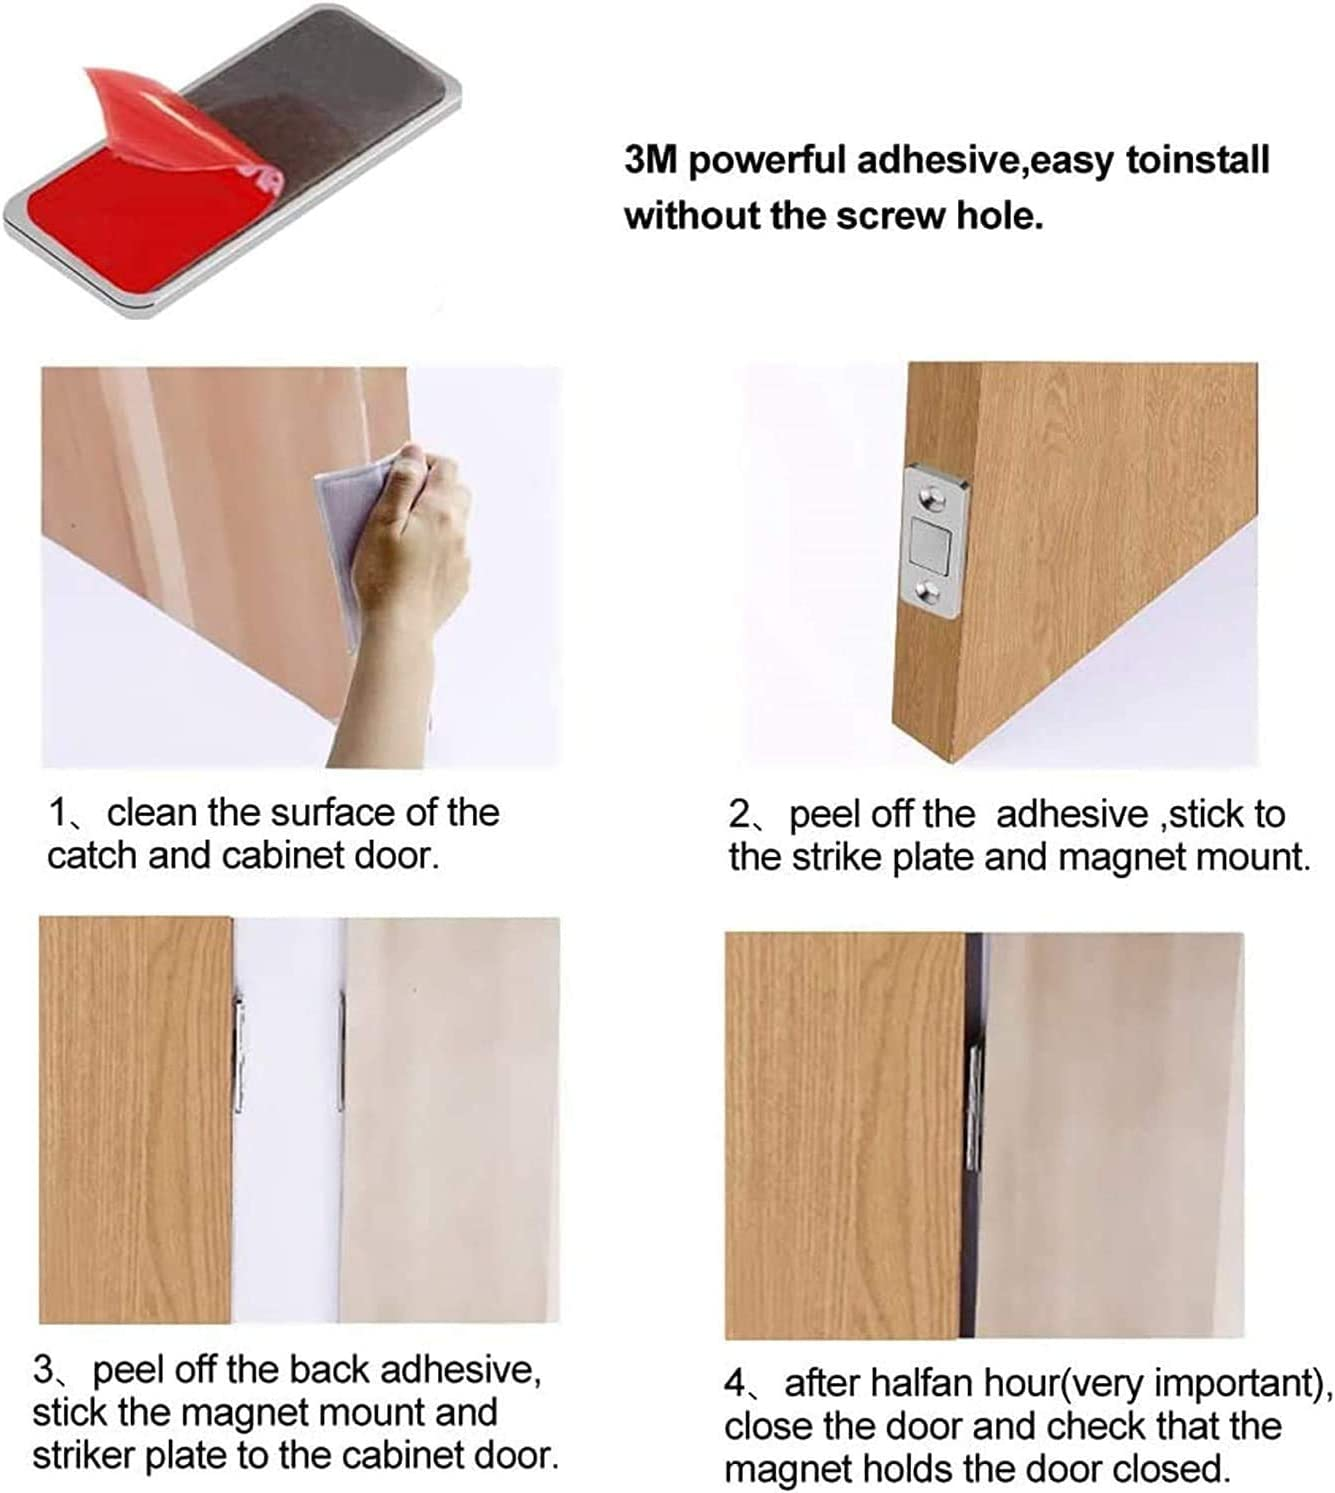 10 Sets Punch-free Magnetic Door Closer Stainless Steel Invisible Ultra Thin Adhesive Drawer Magnets Door Catch